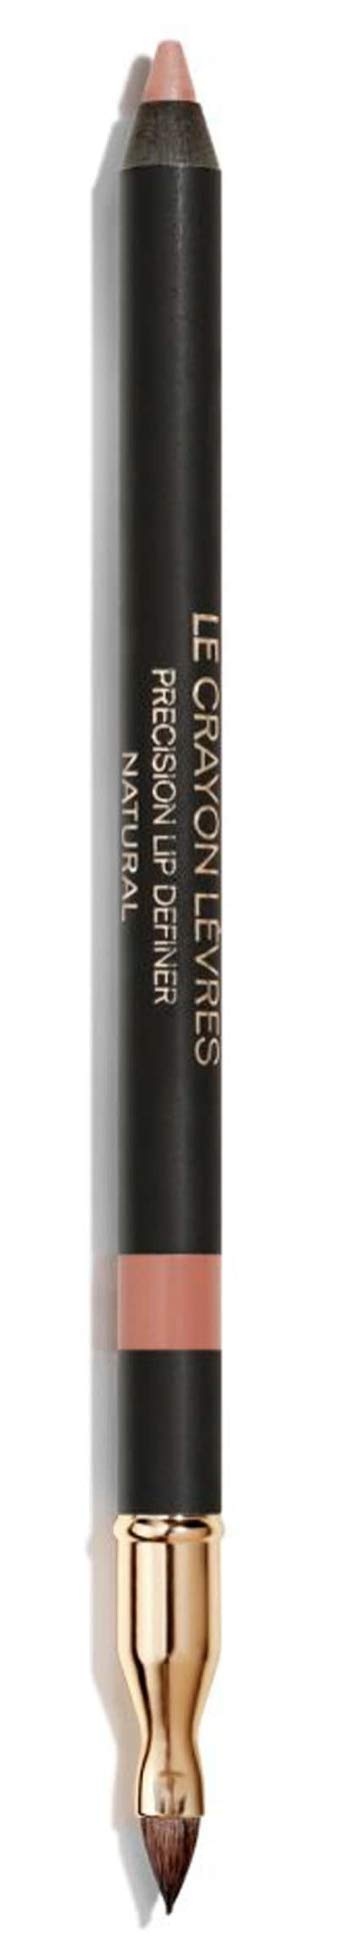 LE CRAYON LEVRES Precision Lip Definer Color: 34 Natural by chanel beauty (Image #1)